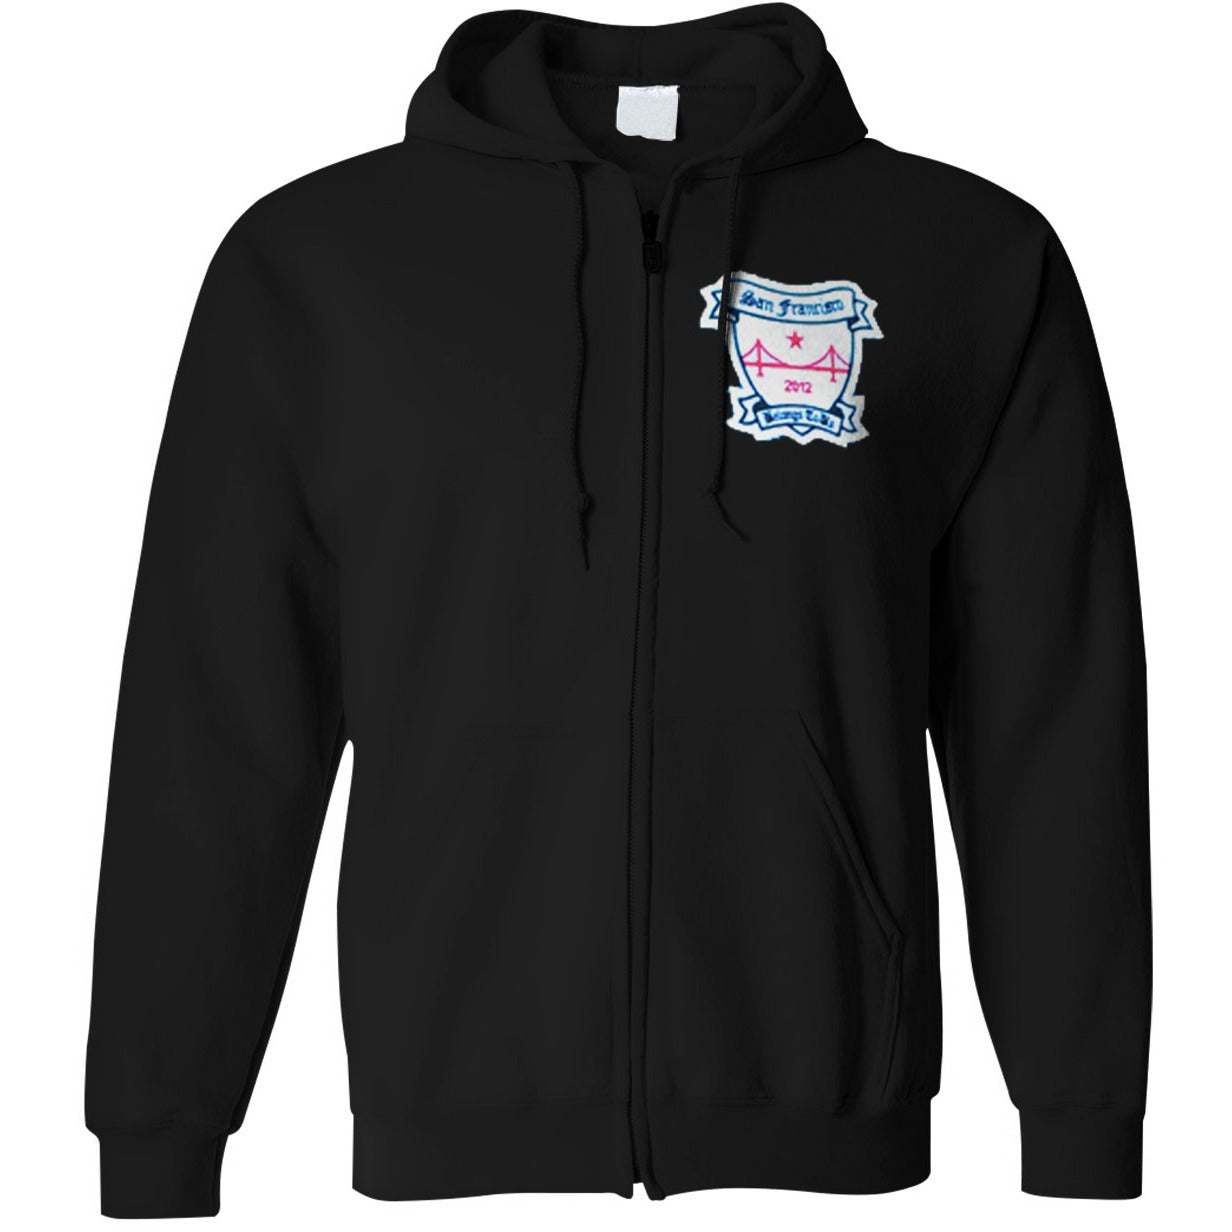 Pirates Press Records - SF Belongs to Us - Patch - Zip-Up Hoodie